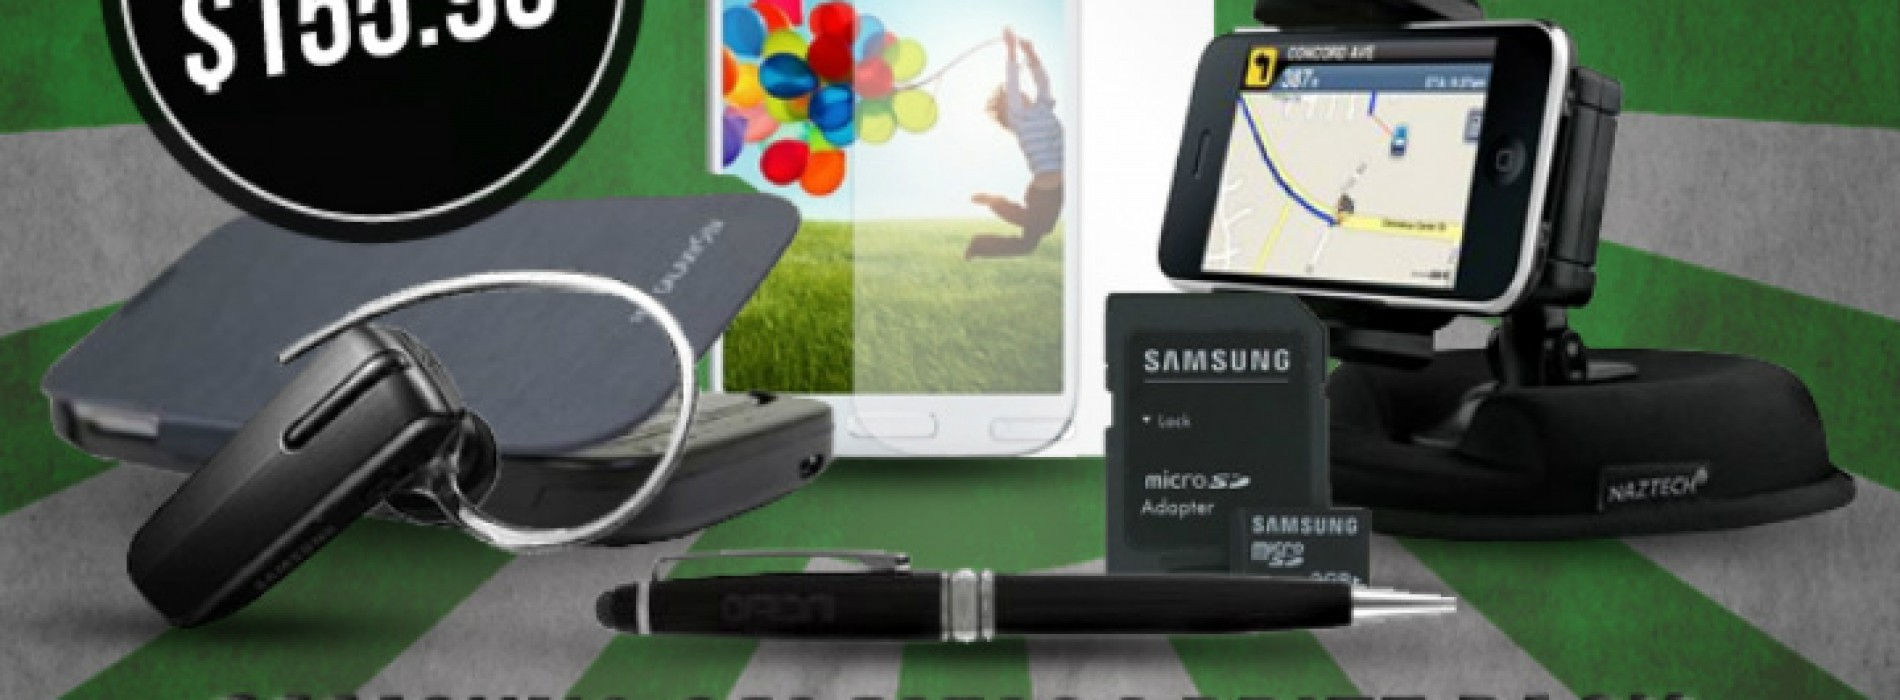 Win a Samsung Galaxy S4 accessory bundle worth $155